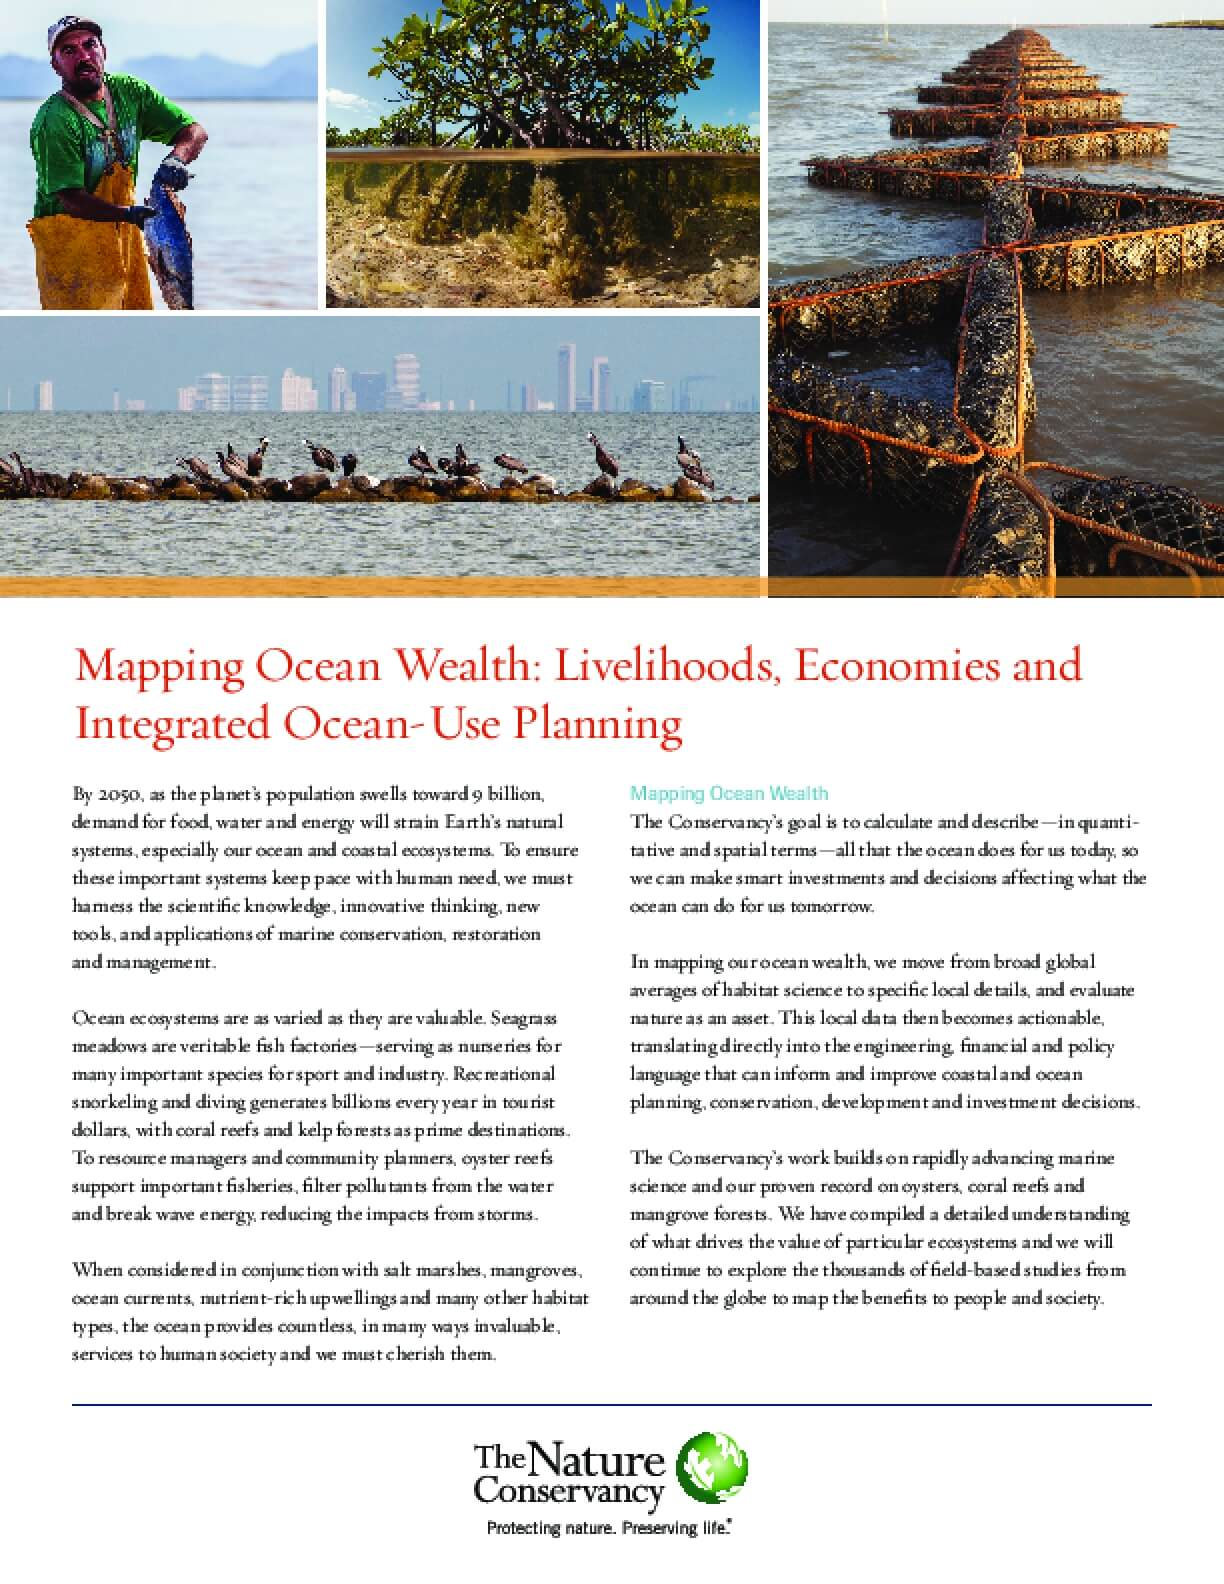 Mapping Ocean Wealth: Livelihoods, Economies and Integrated Ocean-Use Planning